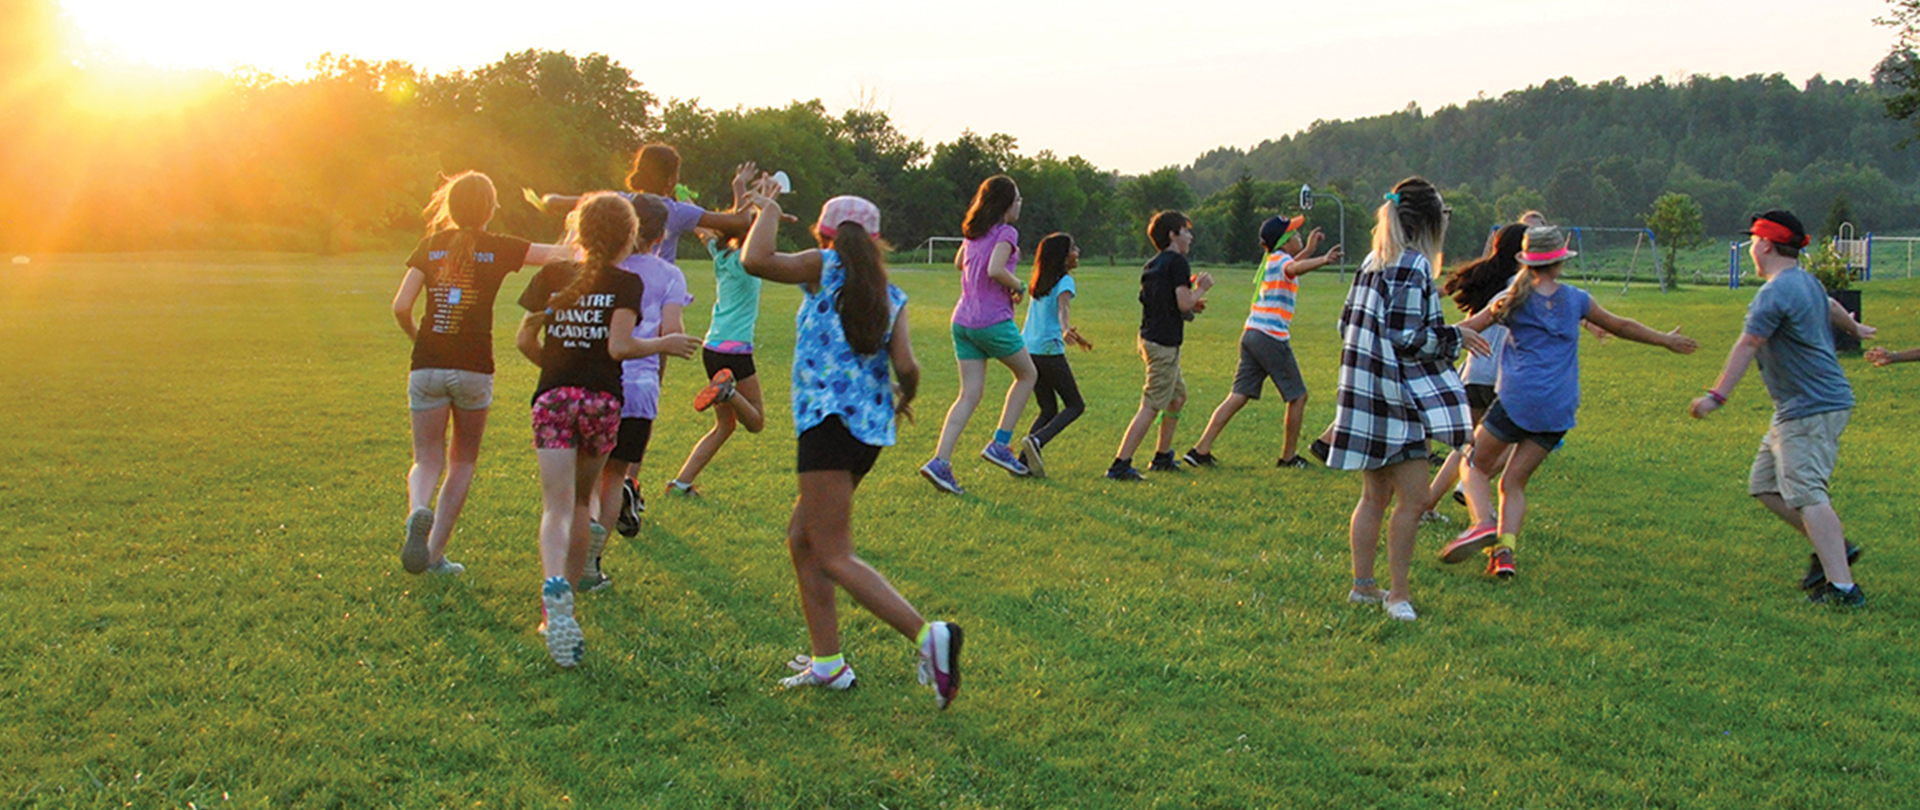 Youth playing in a field at Take Action Camp